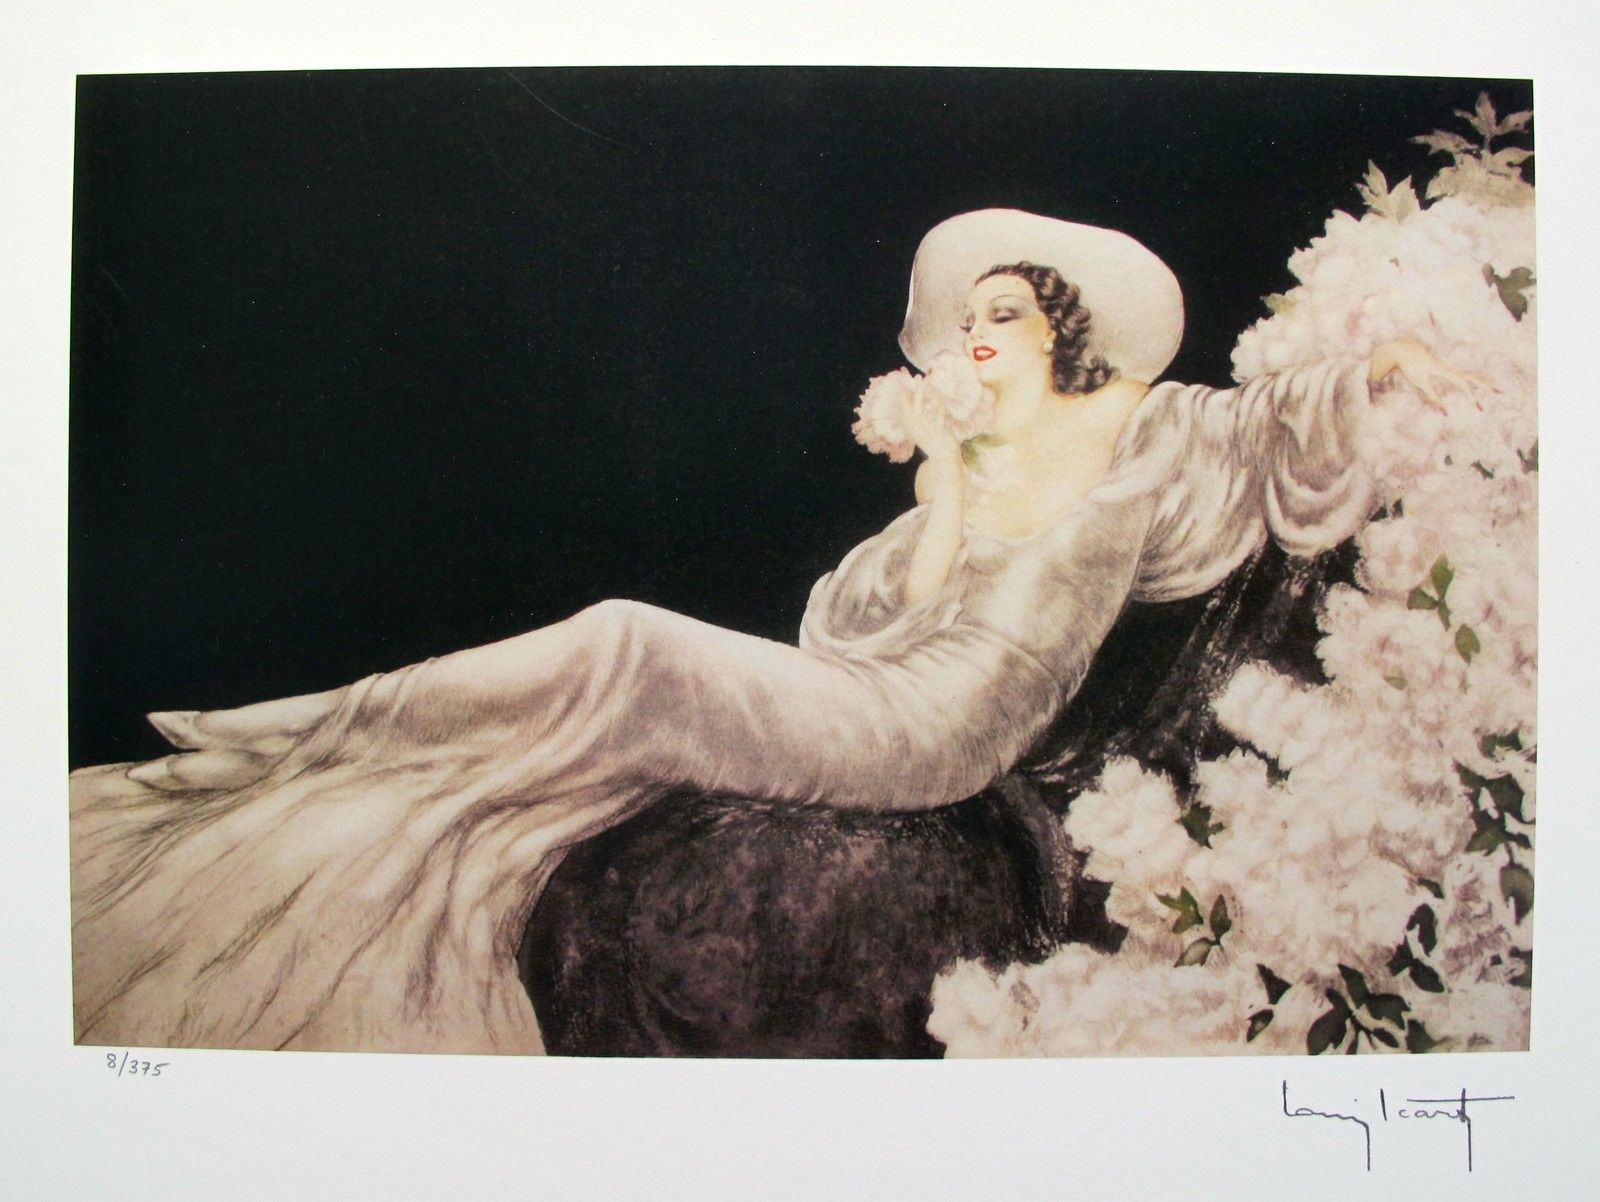 Louis Icart PARFUM DE FLEURS Facsimile Signed Limited Edition Small Giclee Art